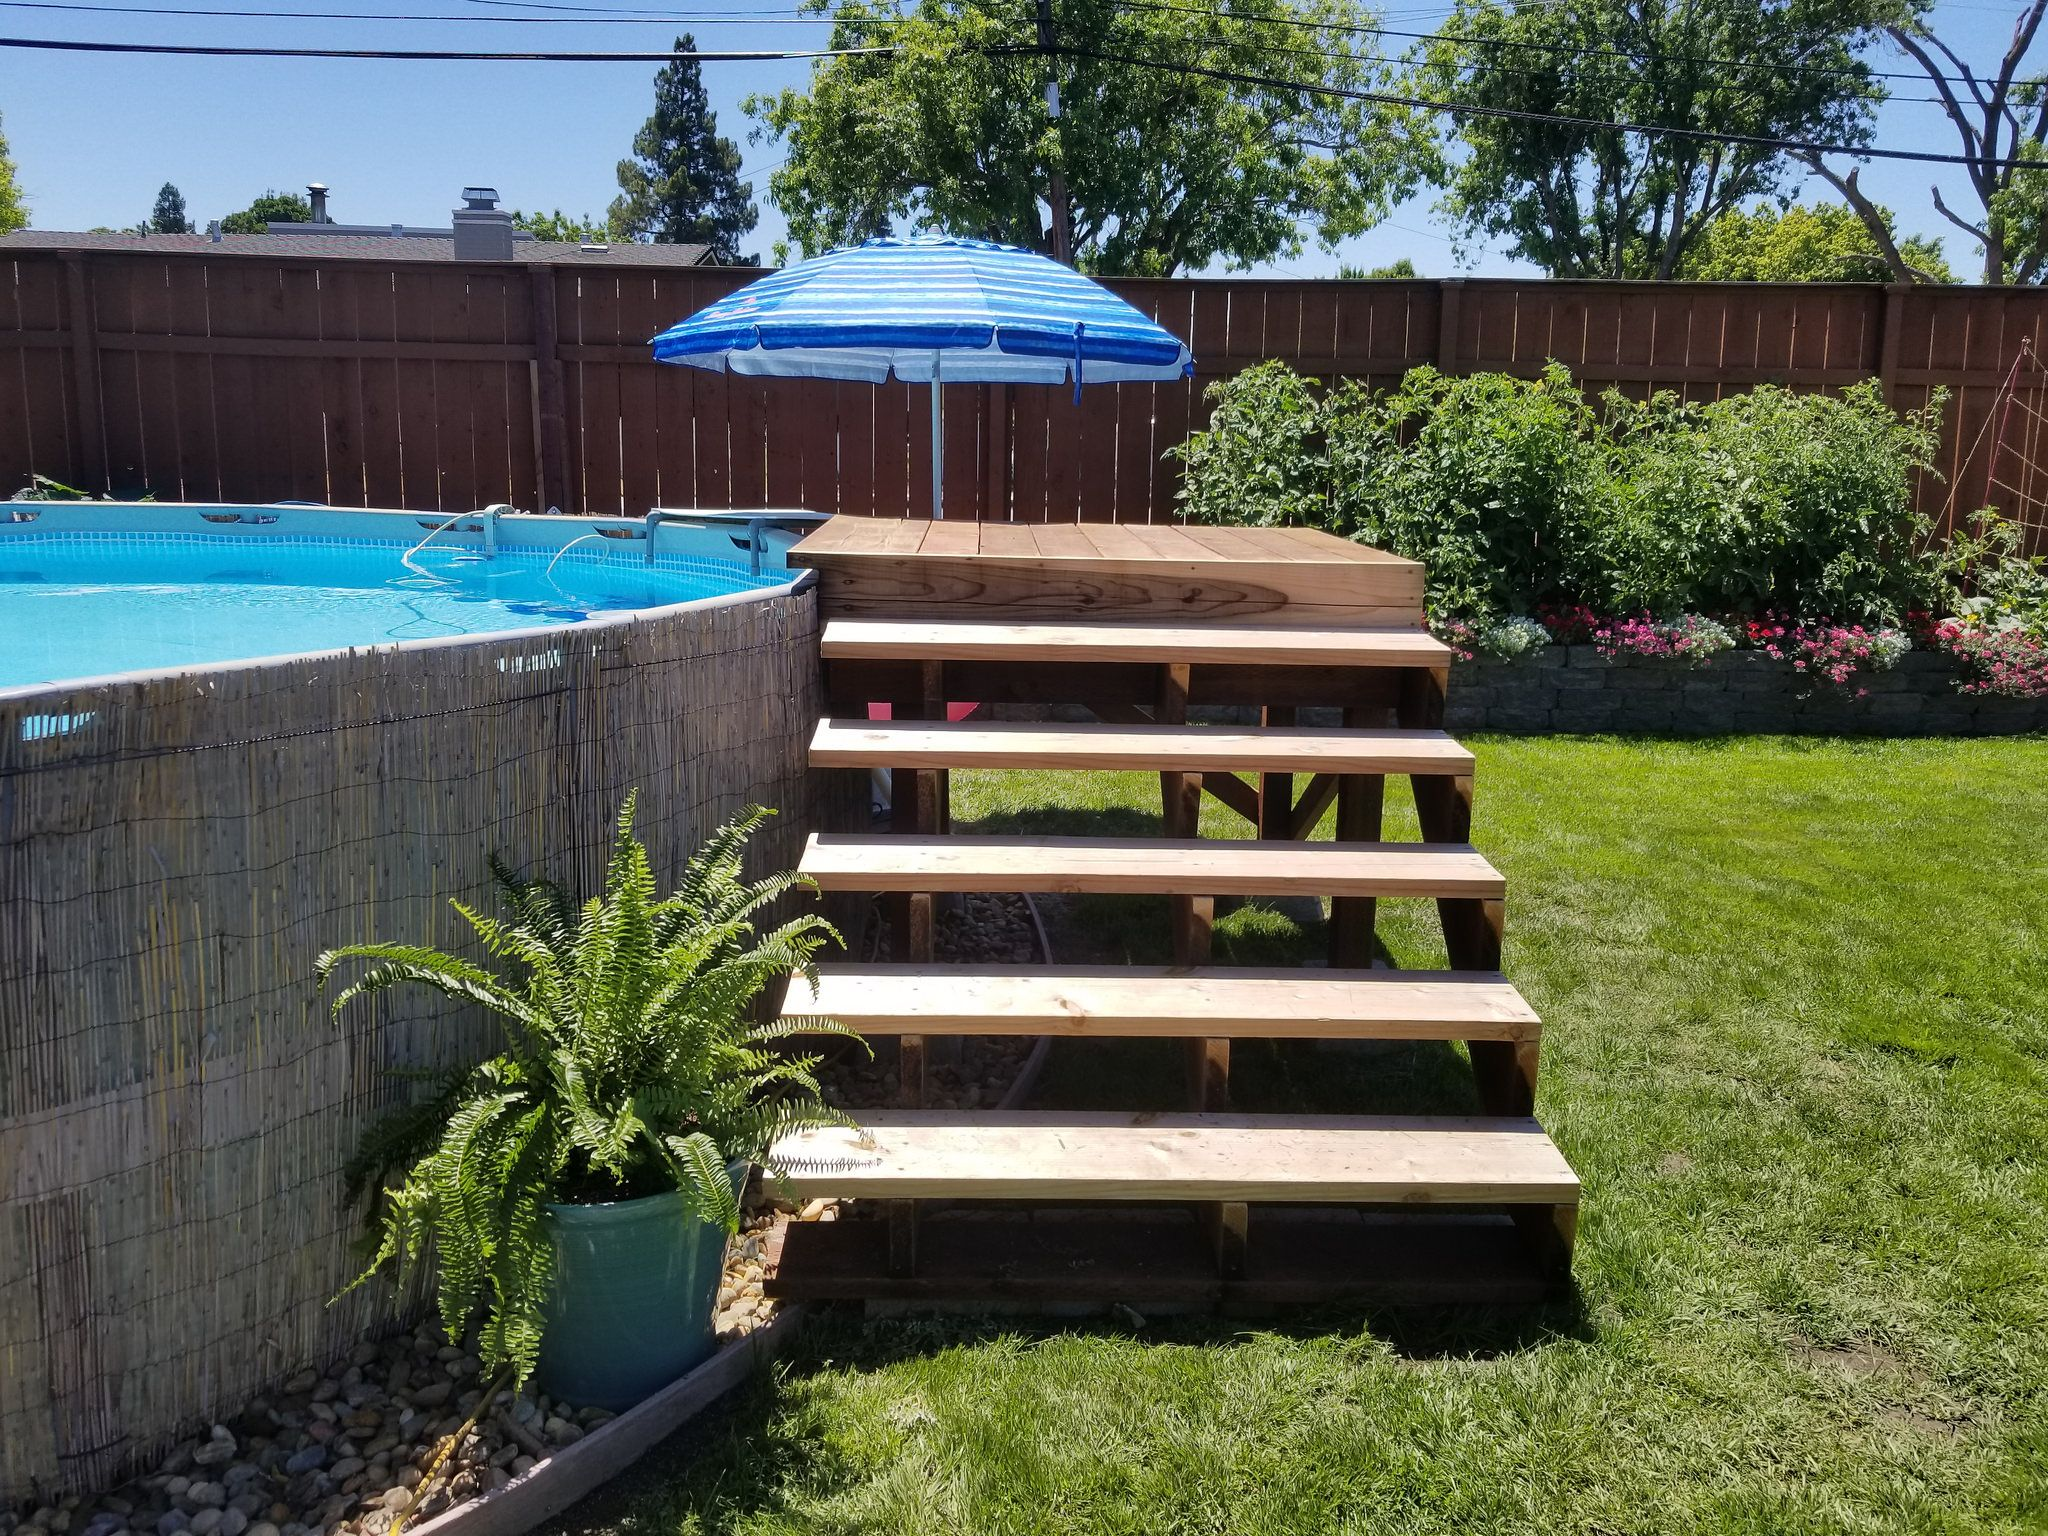 20170618_114845 above ground pool landscaping backyard